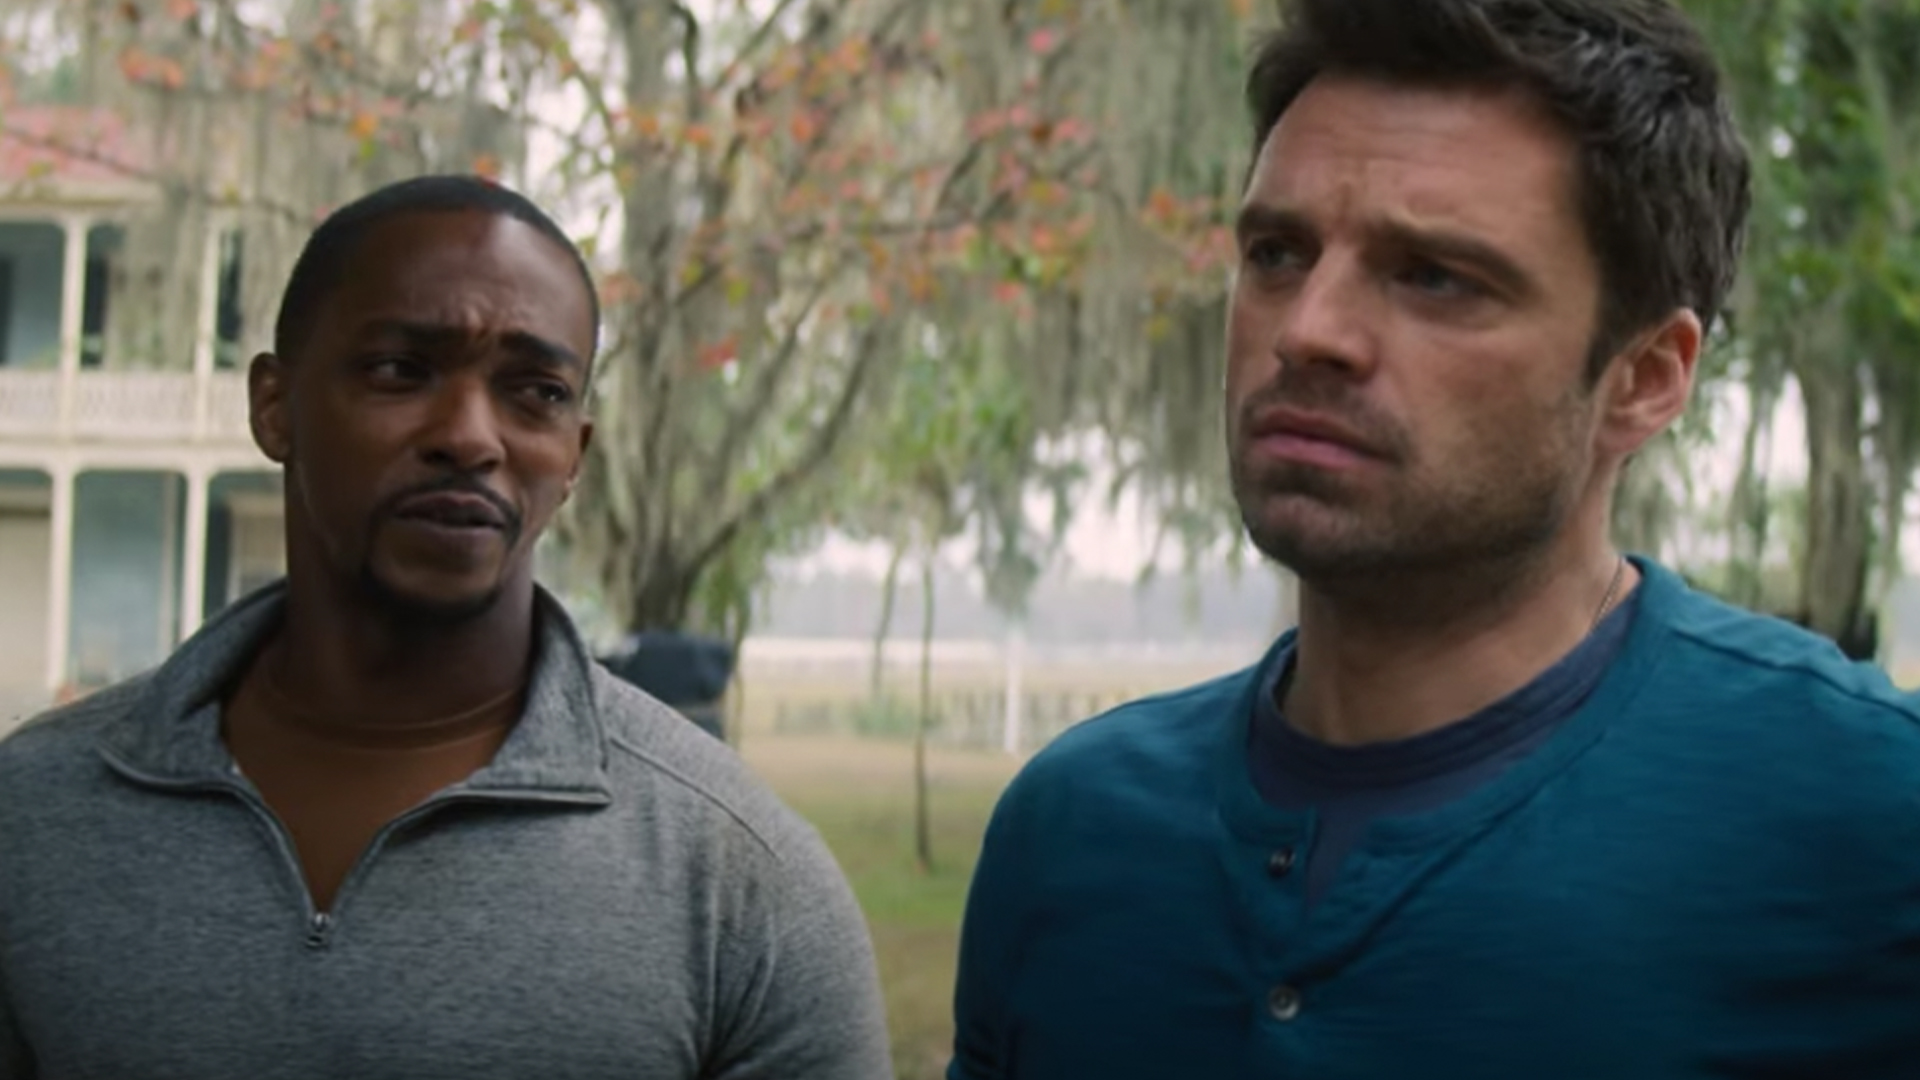 Anthony Mackie (left) and Sebastian Stan in 'The Falcon and The Winter Soldier' on Disney+